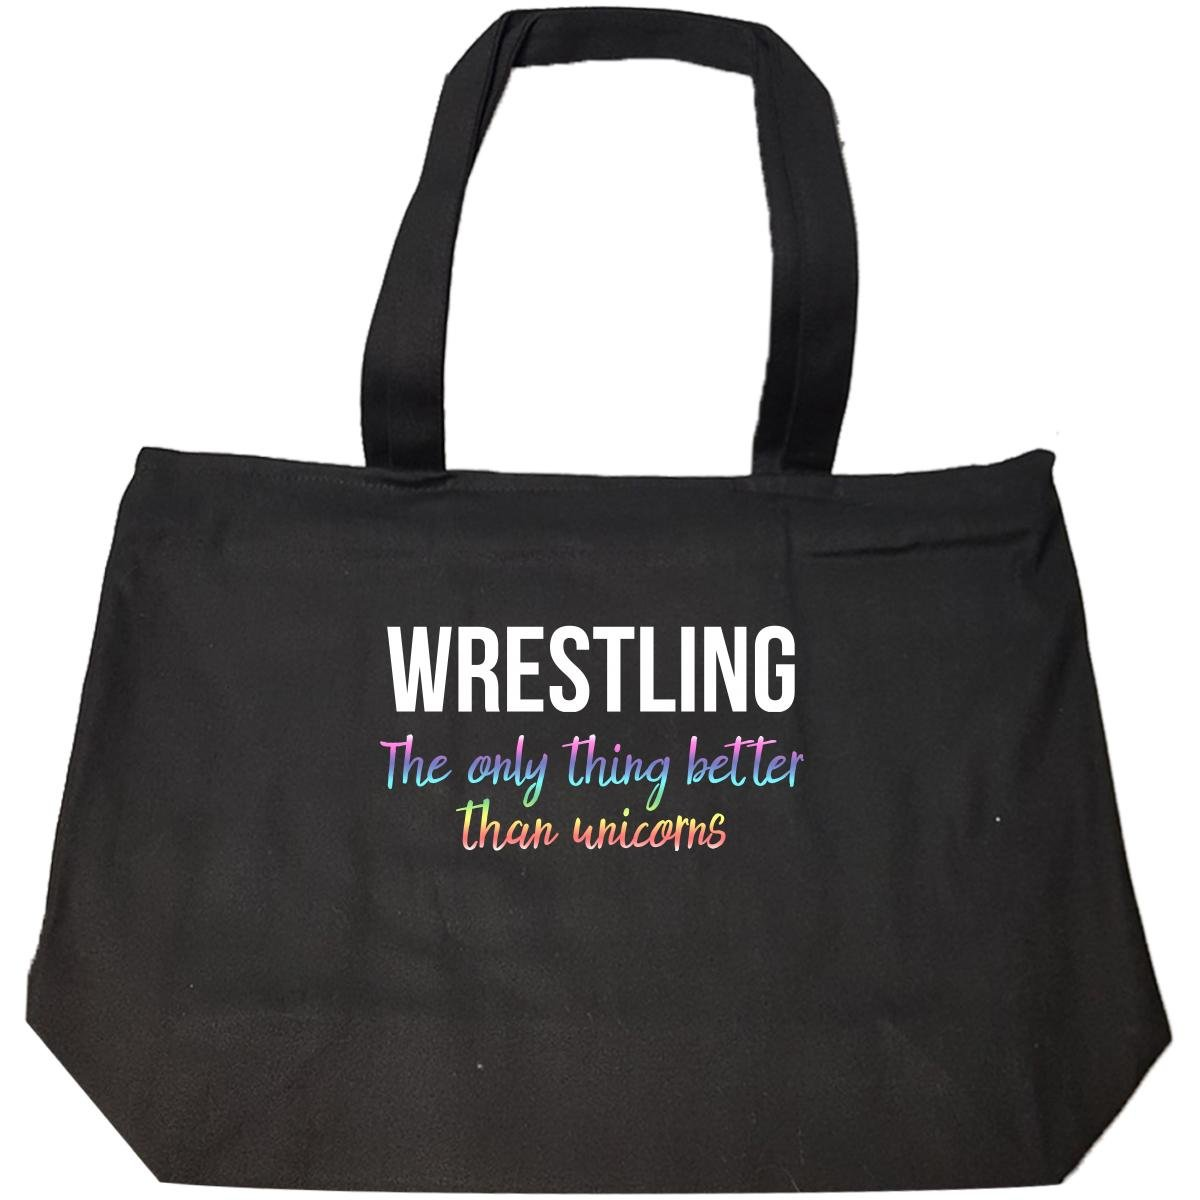 Wrestling The Only Thing Better Than Unicorns Funny - Tote Bag With Zip